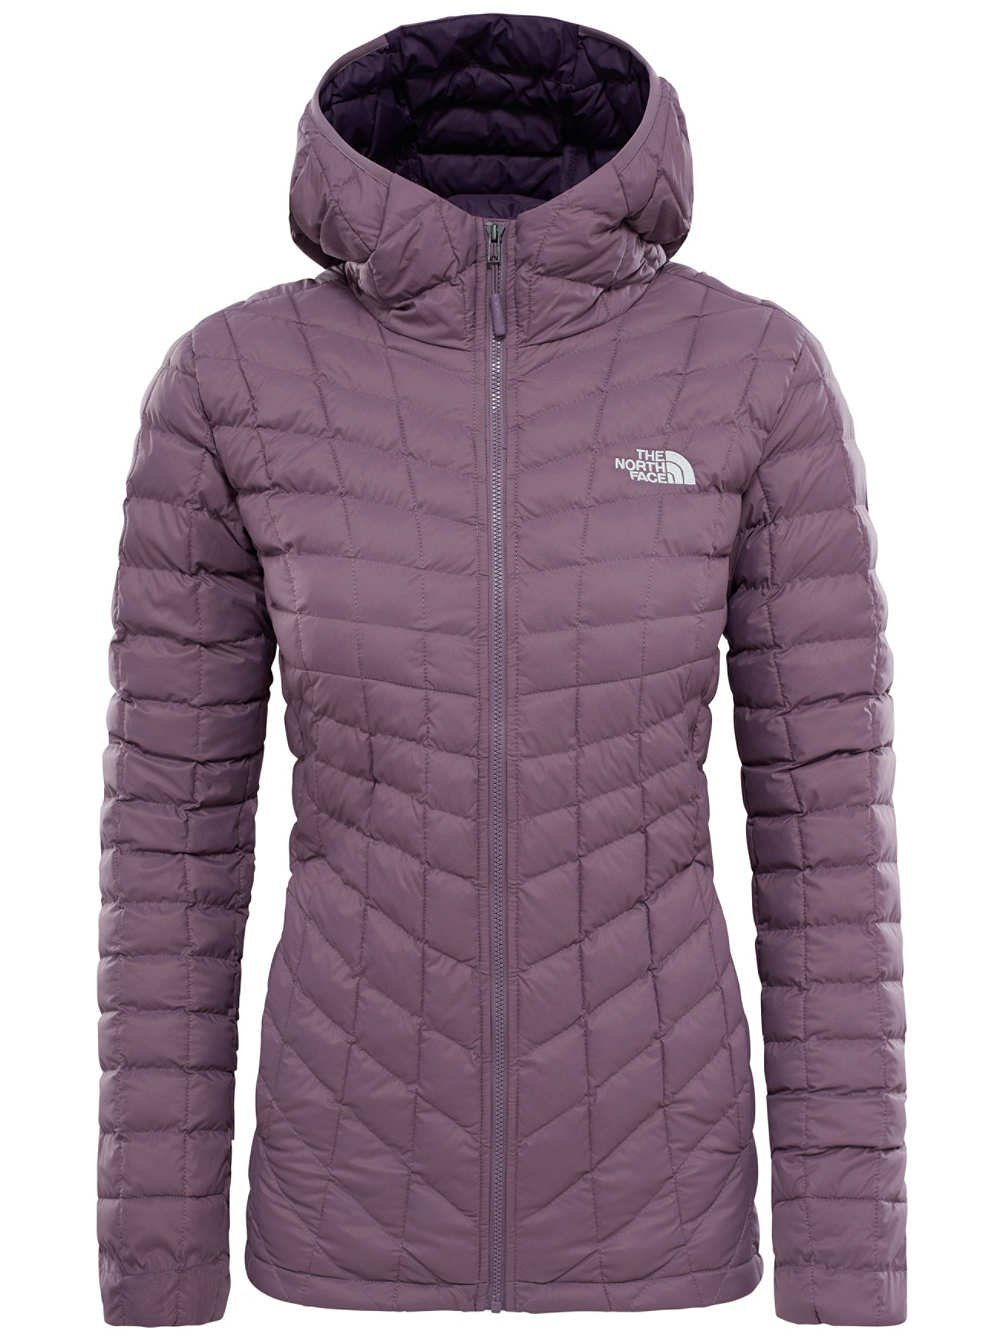 The North Face W Thermoball Hoodie Chaqueta, Mujer, Violeta (Black Plum),